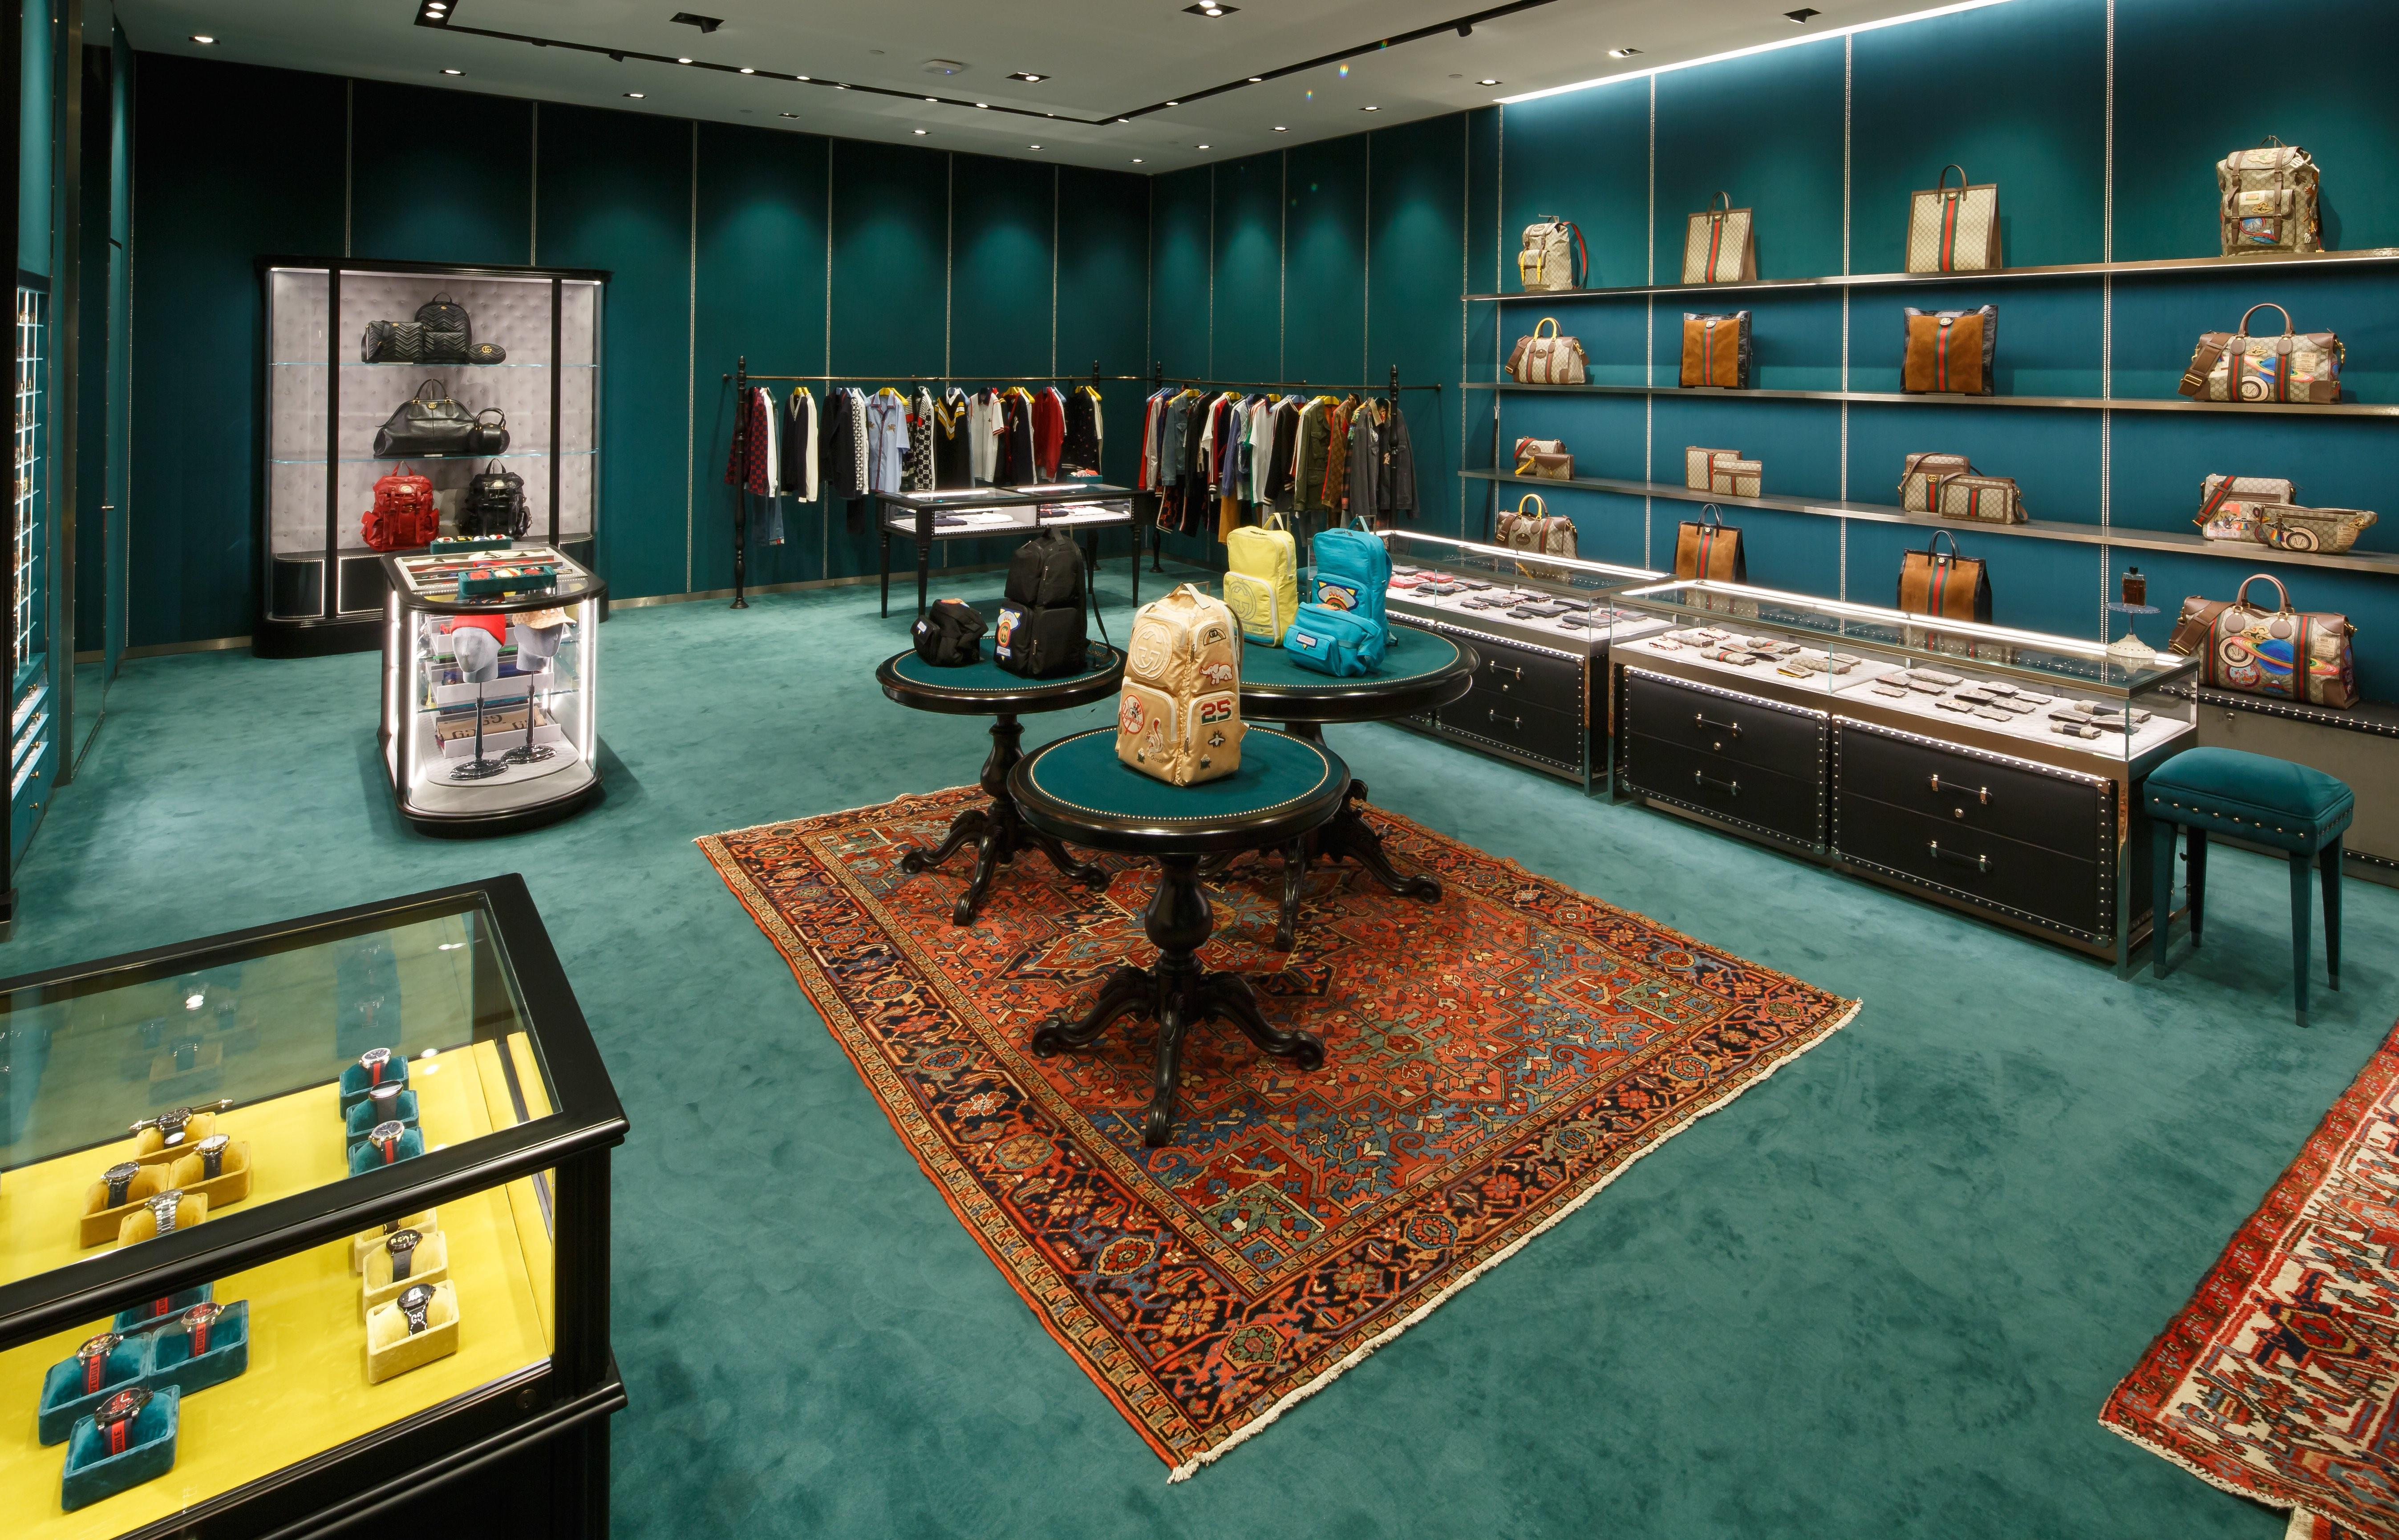 Gucci at Phipps Plaza image 8